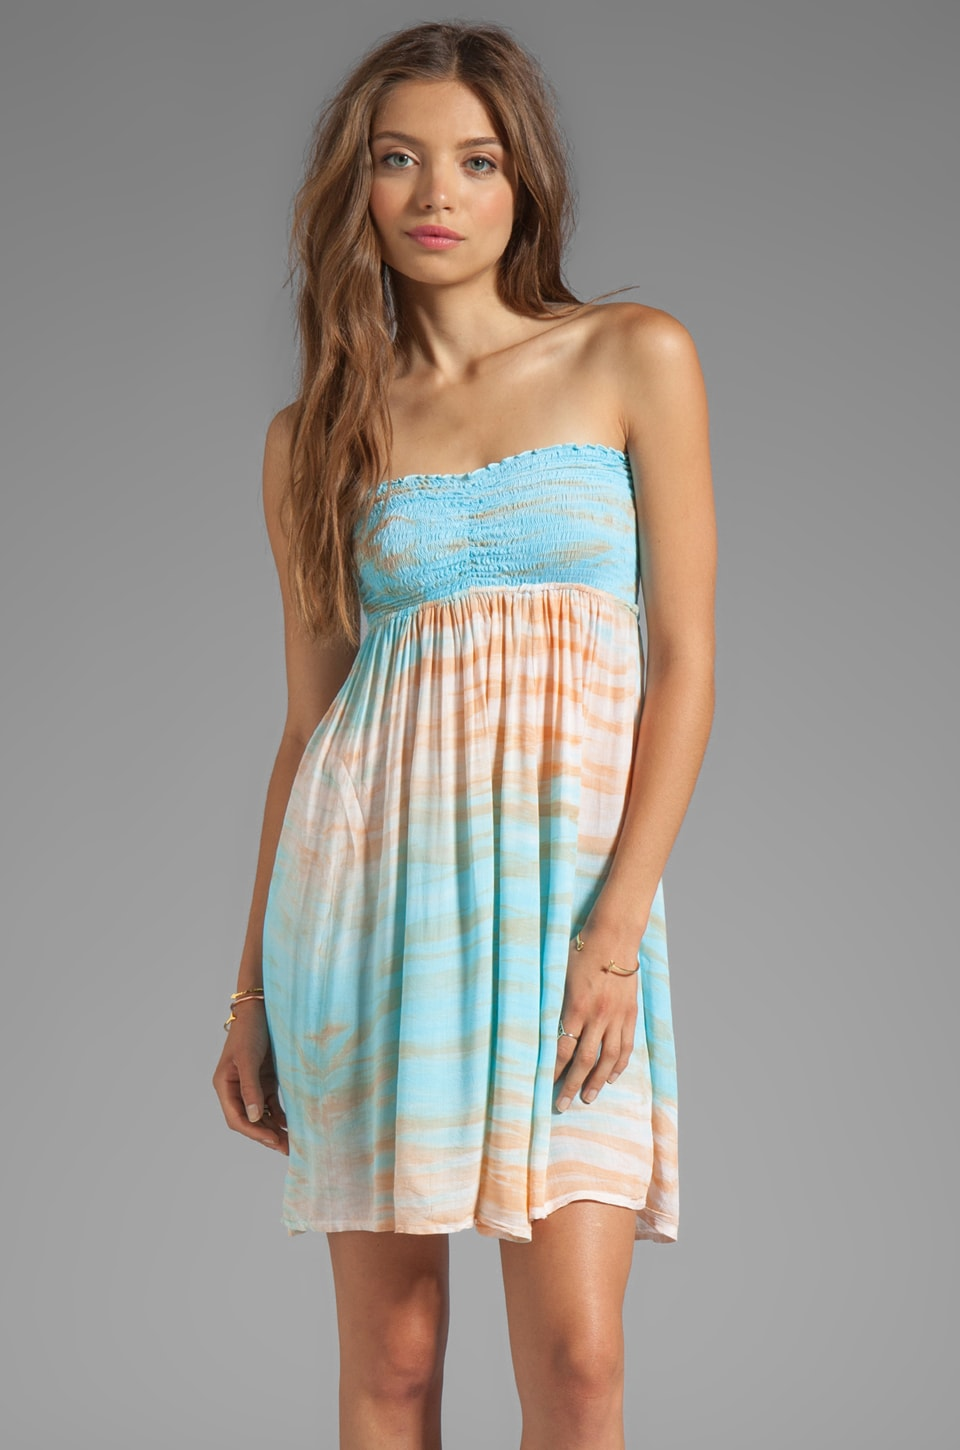 Tiare Hawaii Seaside Short Dress in Teal/Orange/WHITE